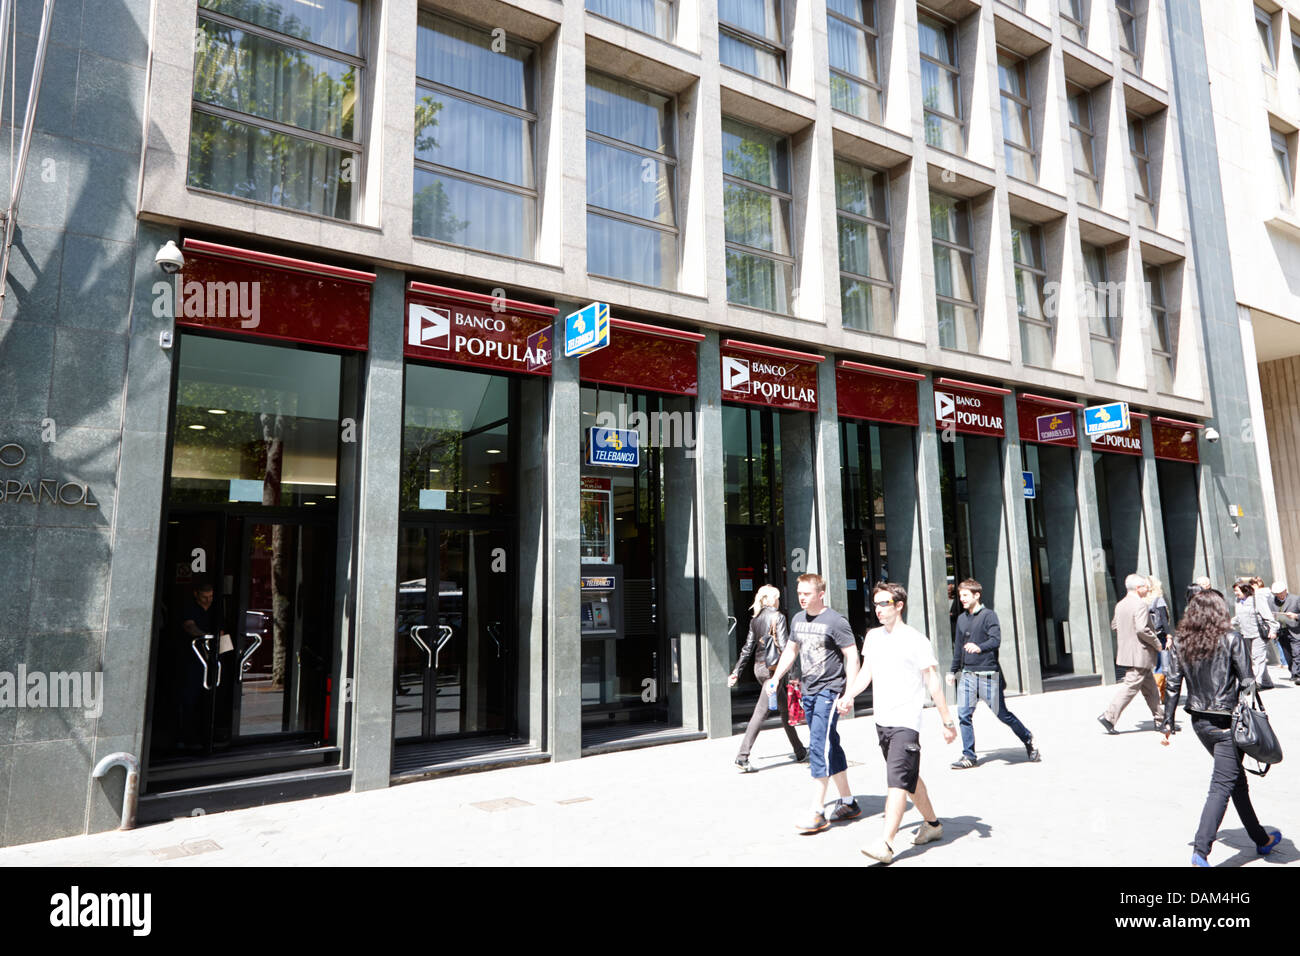 branch of banco popular espanol Barcelona Catalonia Spain - Stock Image